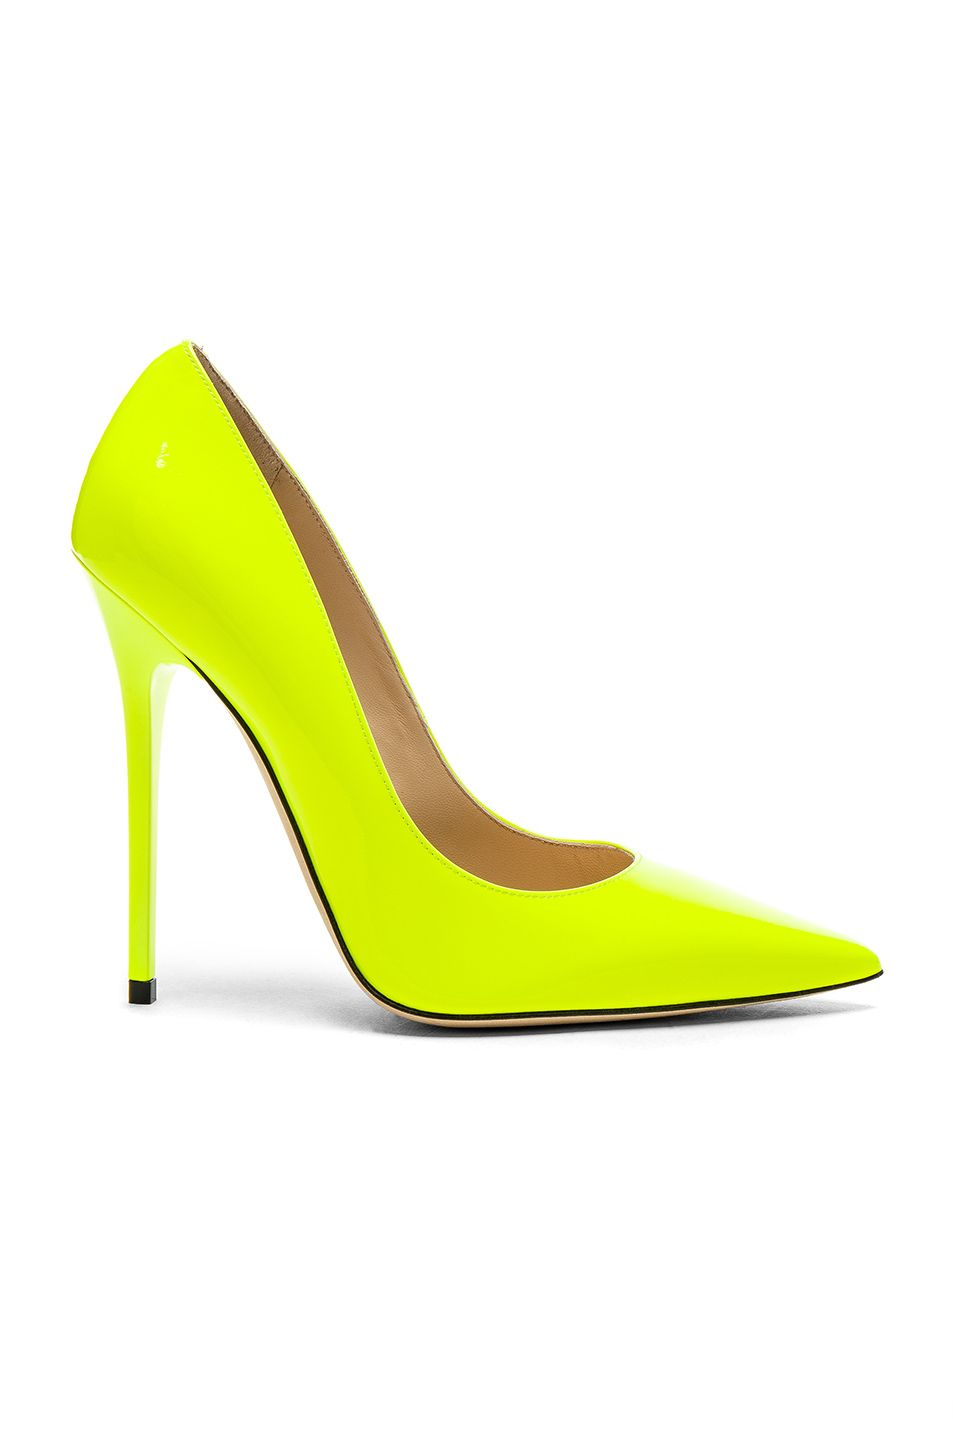 0e2e68bdbe2 Jimmy Choo Neon Patent Leather Anouk Heels in Shocking Yellow ...